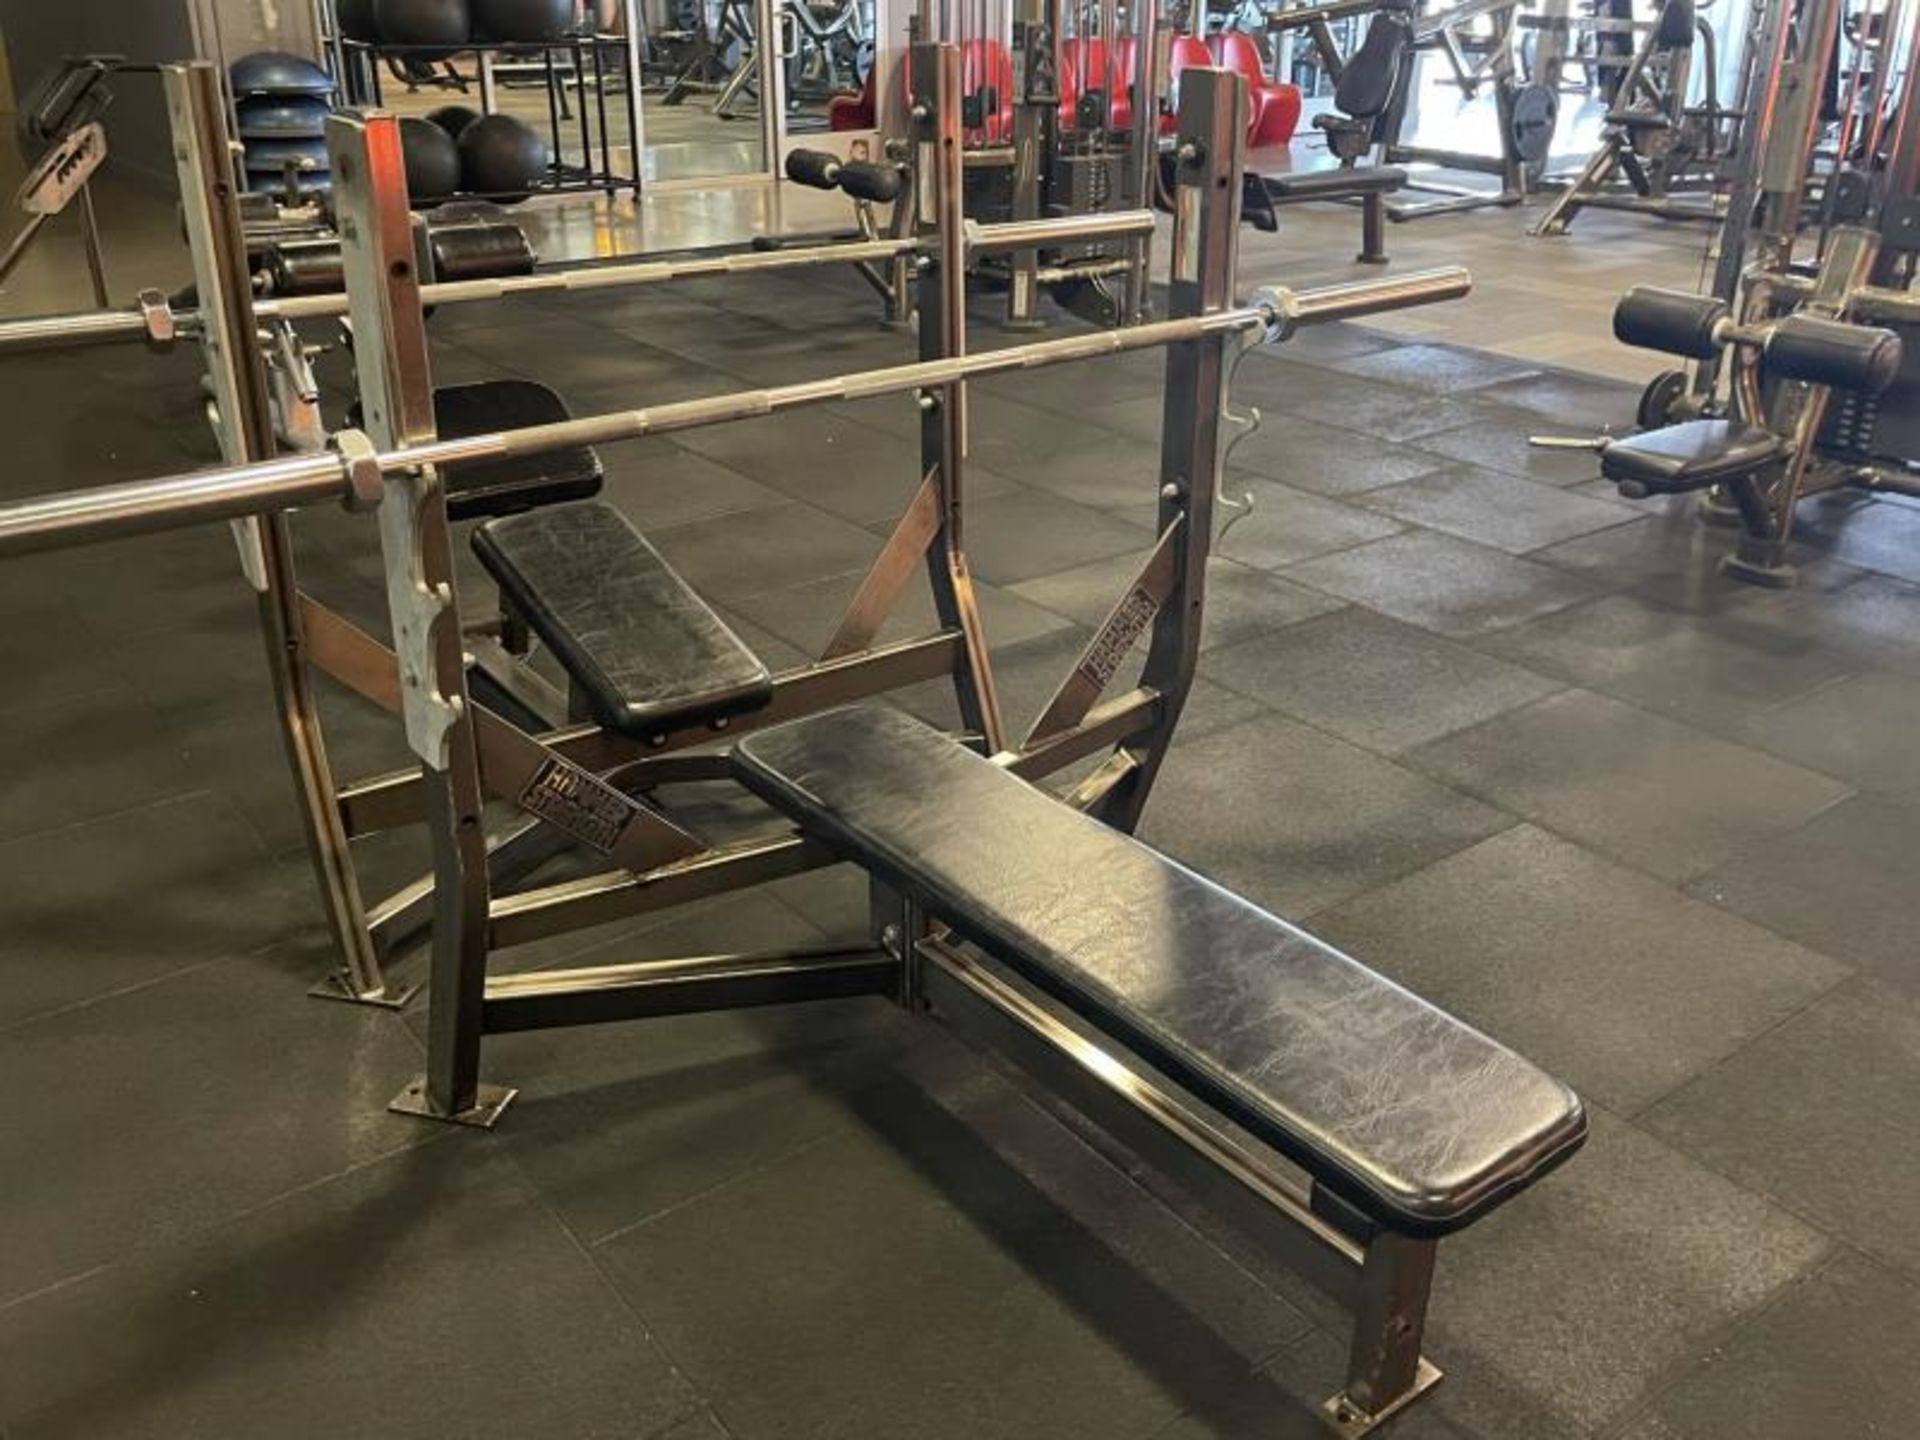 Hammer Strength Bench with Bar - Image 2 of 3